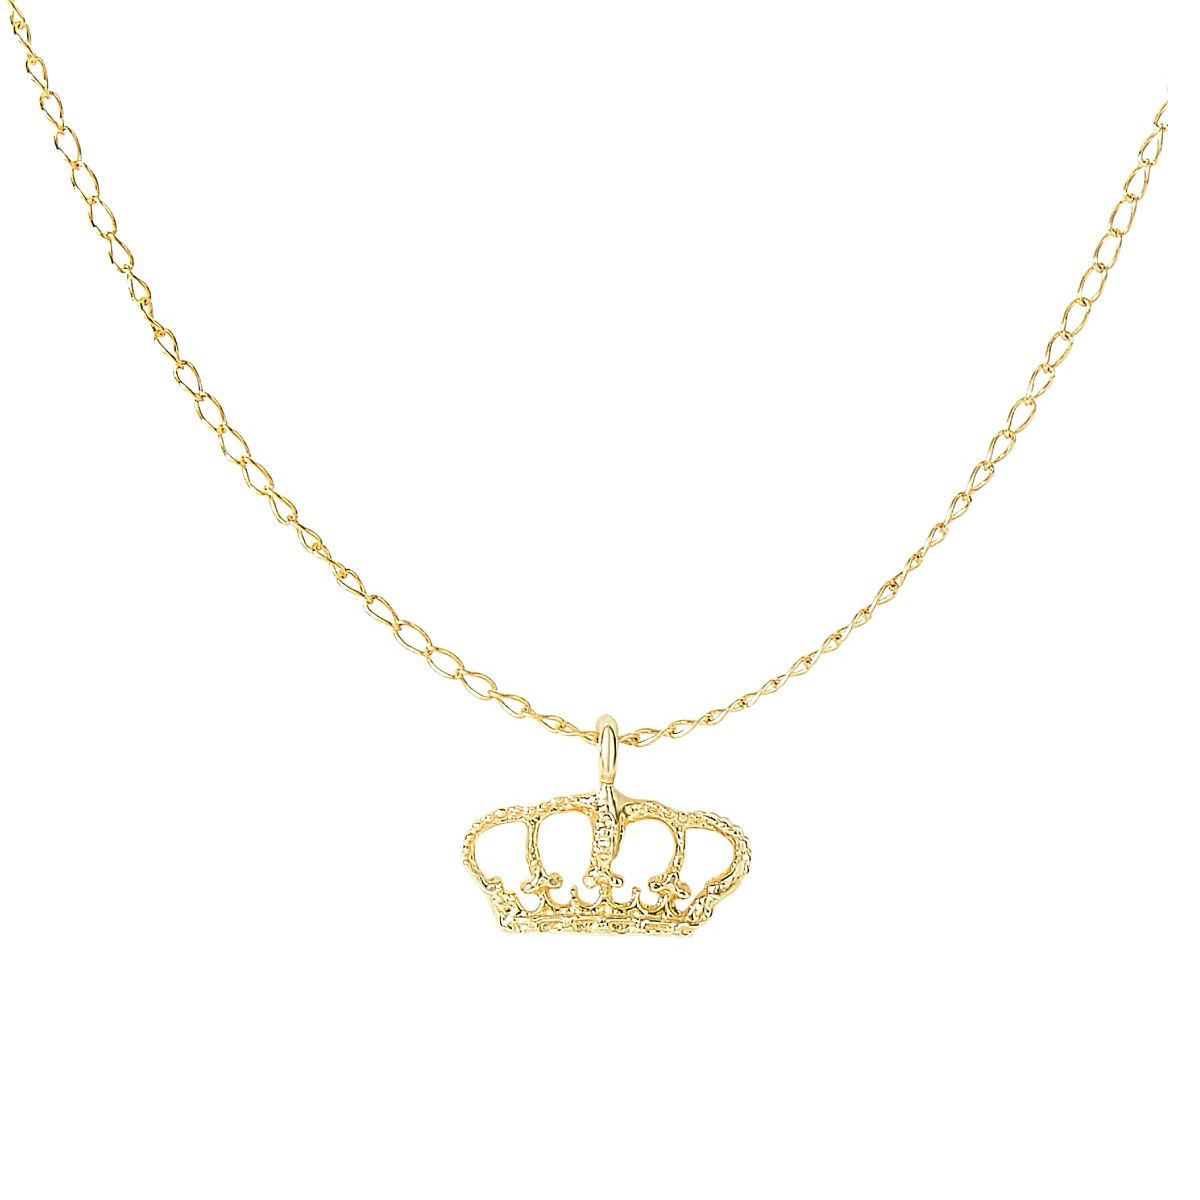 male hip men hop from crown plated product necklace wholesale cuban gold round diamond chain rbvajfi pendant tag butterfly alloy